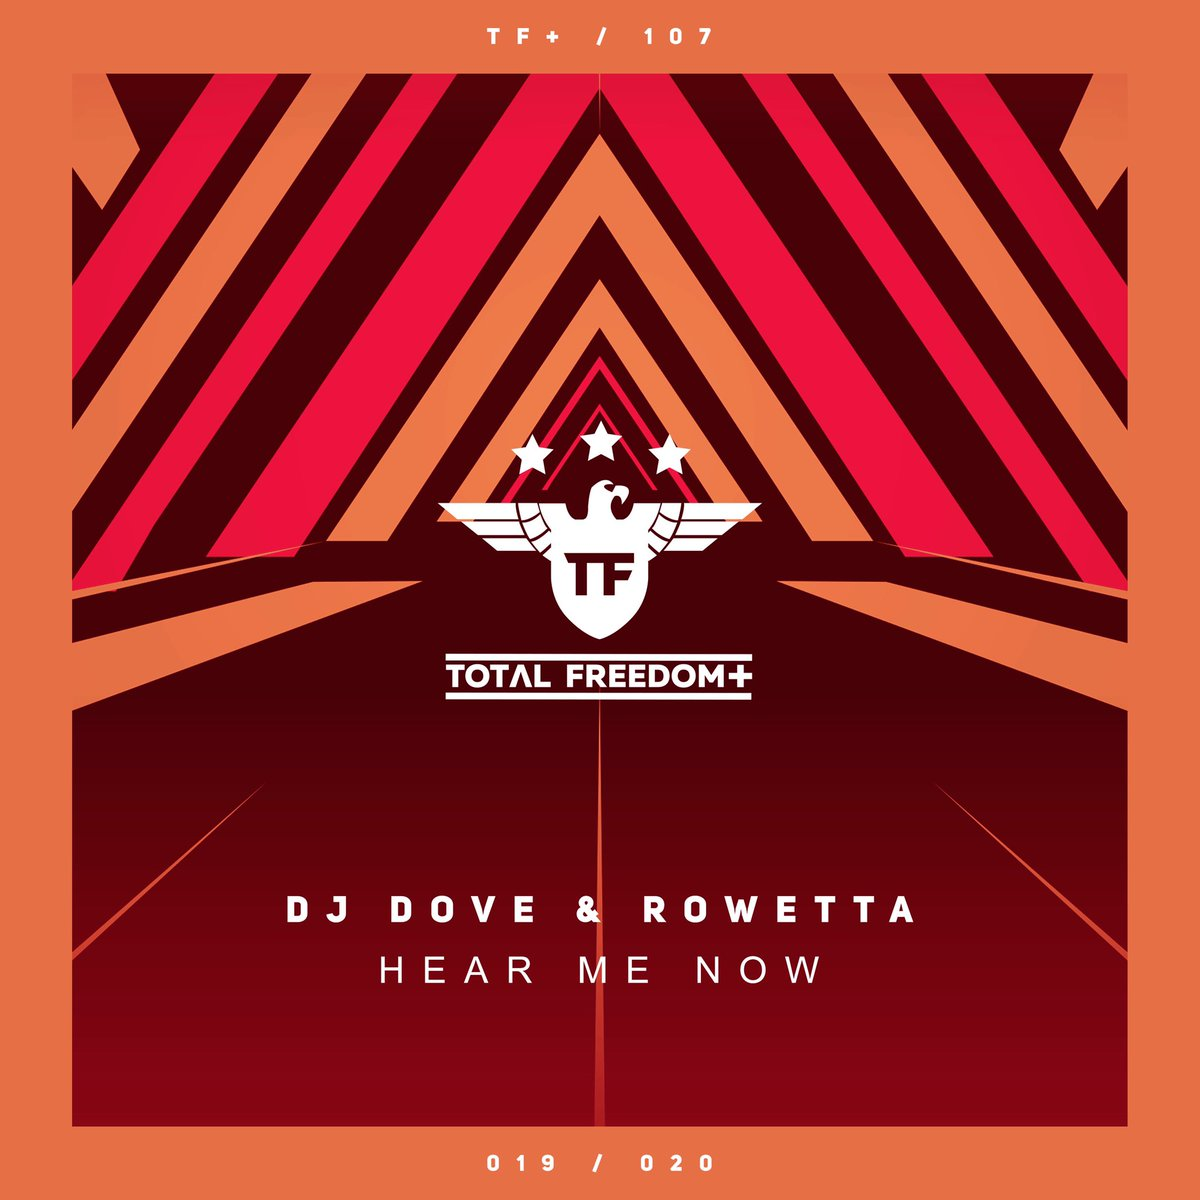 Coming soon...My collaboration with the wonderful @djdove33  'Hear Me Now' - DJ Dove & Rowetta / Out July 20th on @TotalFreedomRec   #djdove #Rowetta #TotalFreedom #HearMeNow https://t.co/K70vGcigHr